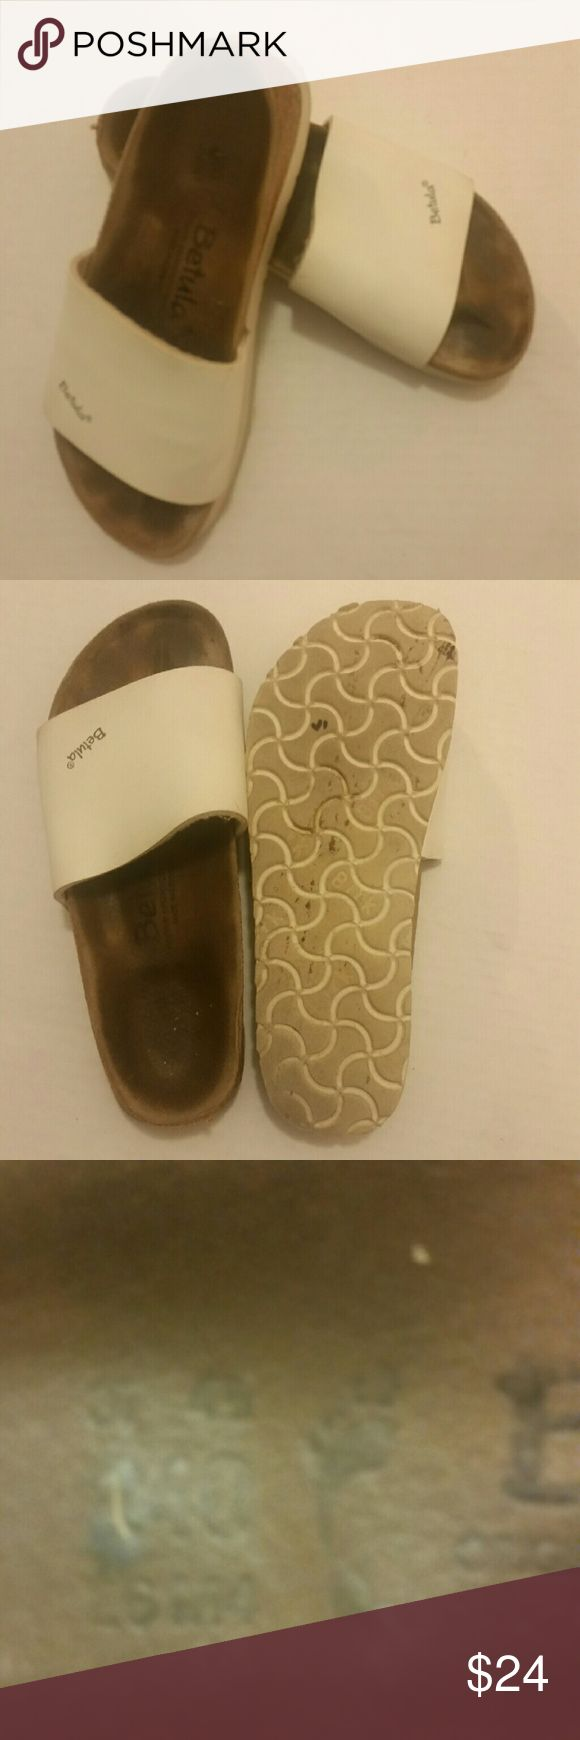 BETULA BY BIRKENSTOCK REGGAE SLIDE Sandal W6/M4 37 Soft fabric lining. Leather padded footbed. Man-made outsole. Made in Germany.  - Open toe - Wide strap vamp - Contoured suede-lined cork footbed - Slip-on - Imported Very good condition, priced to sell. Birkenstock Shoes Sandals